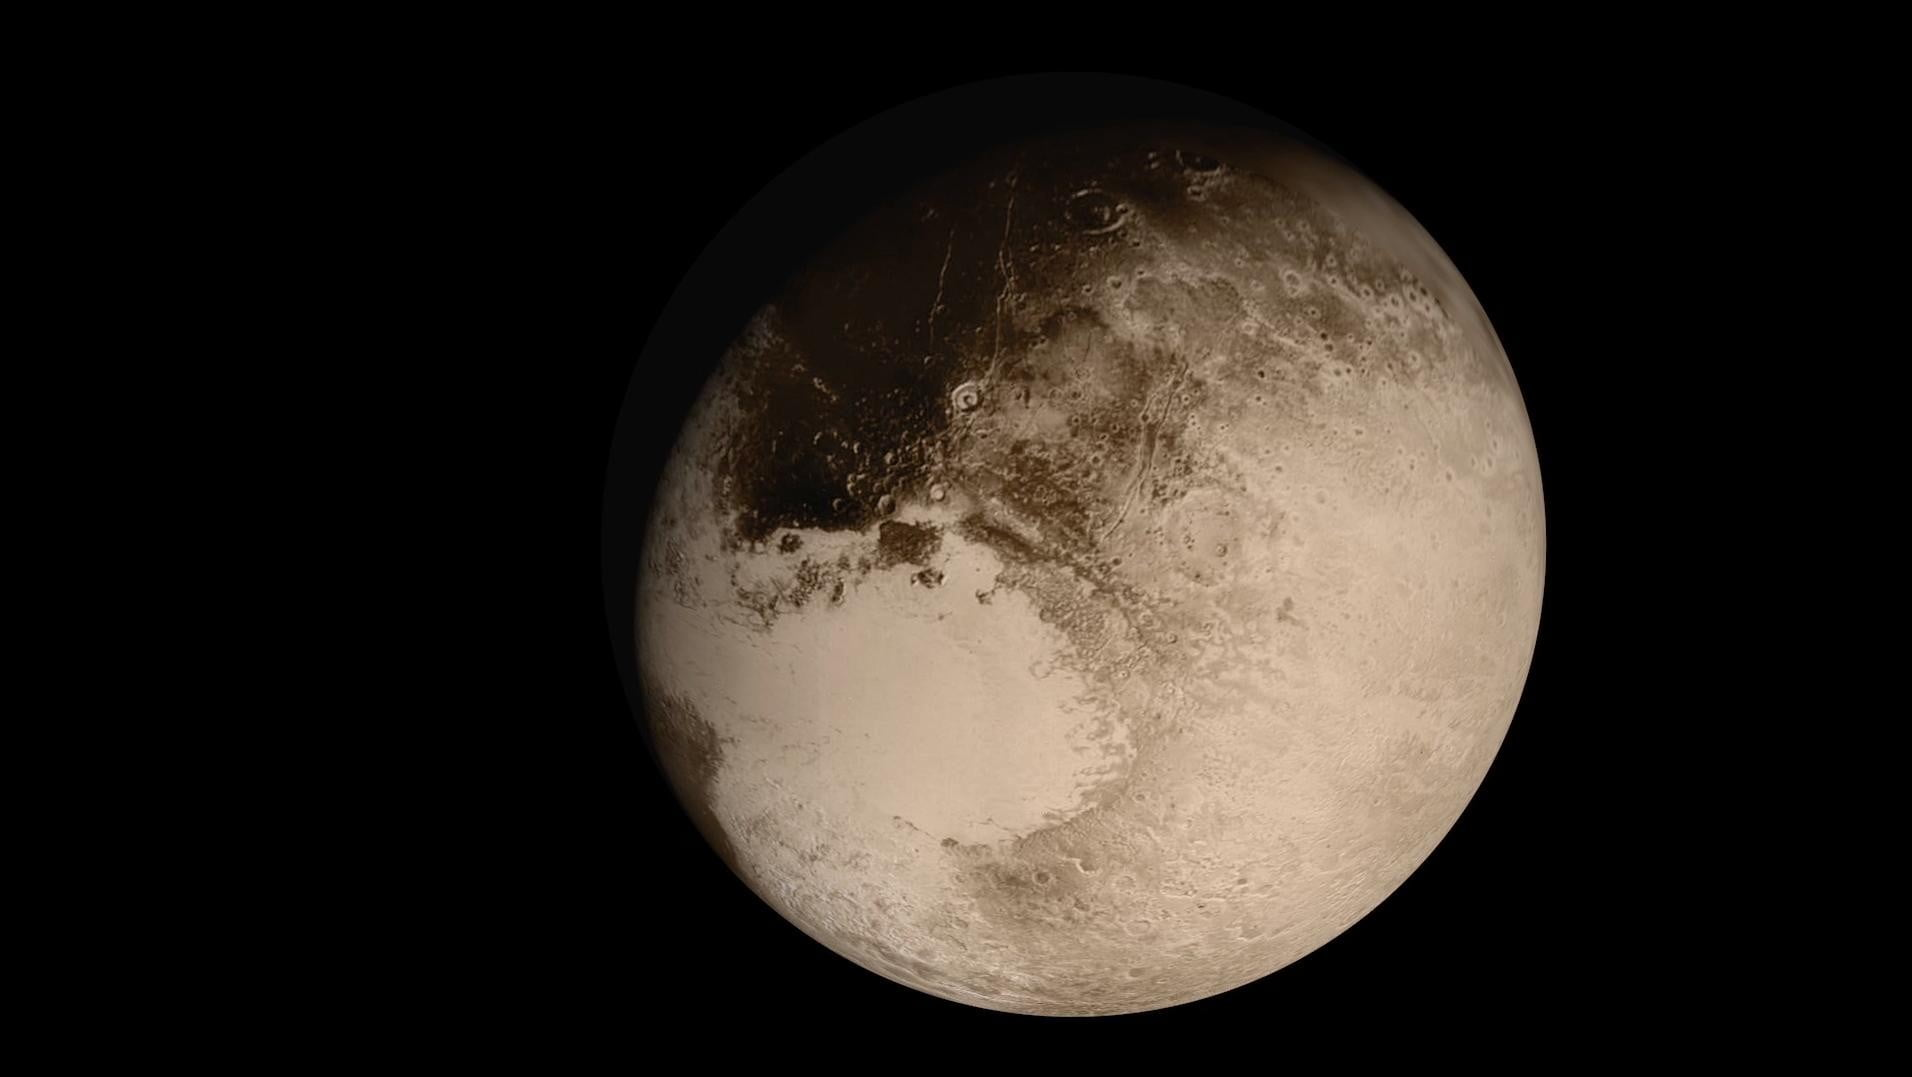 Discovery Of Pluto: Pluto Emitting X-Rays Could Be A Big Deal